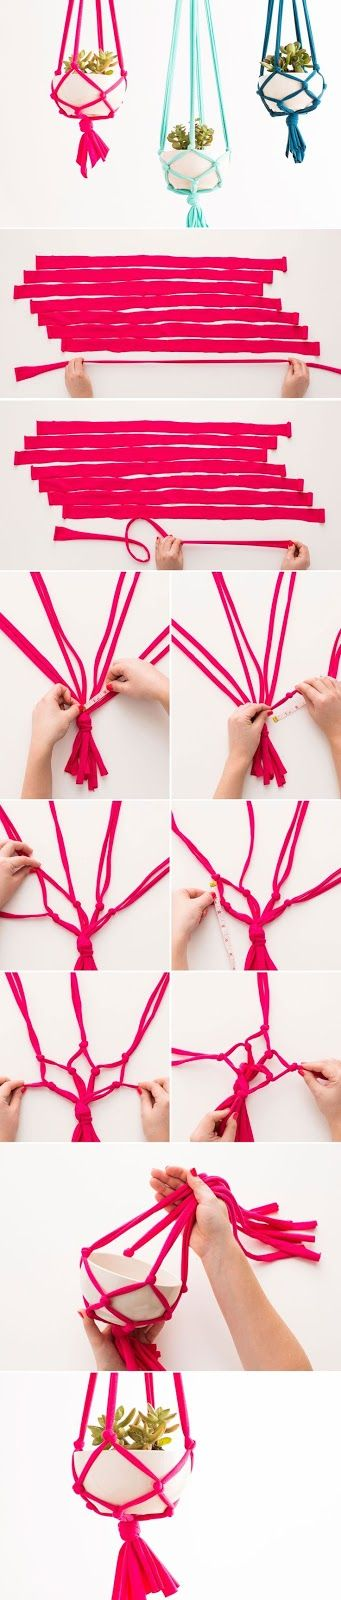 Craft Project Ideas: Make These Macrame Hanging Planters in 30 Minutes!